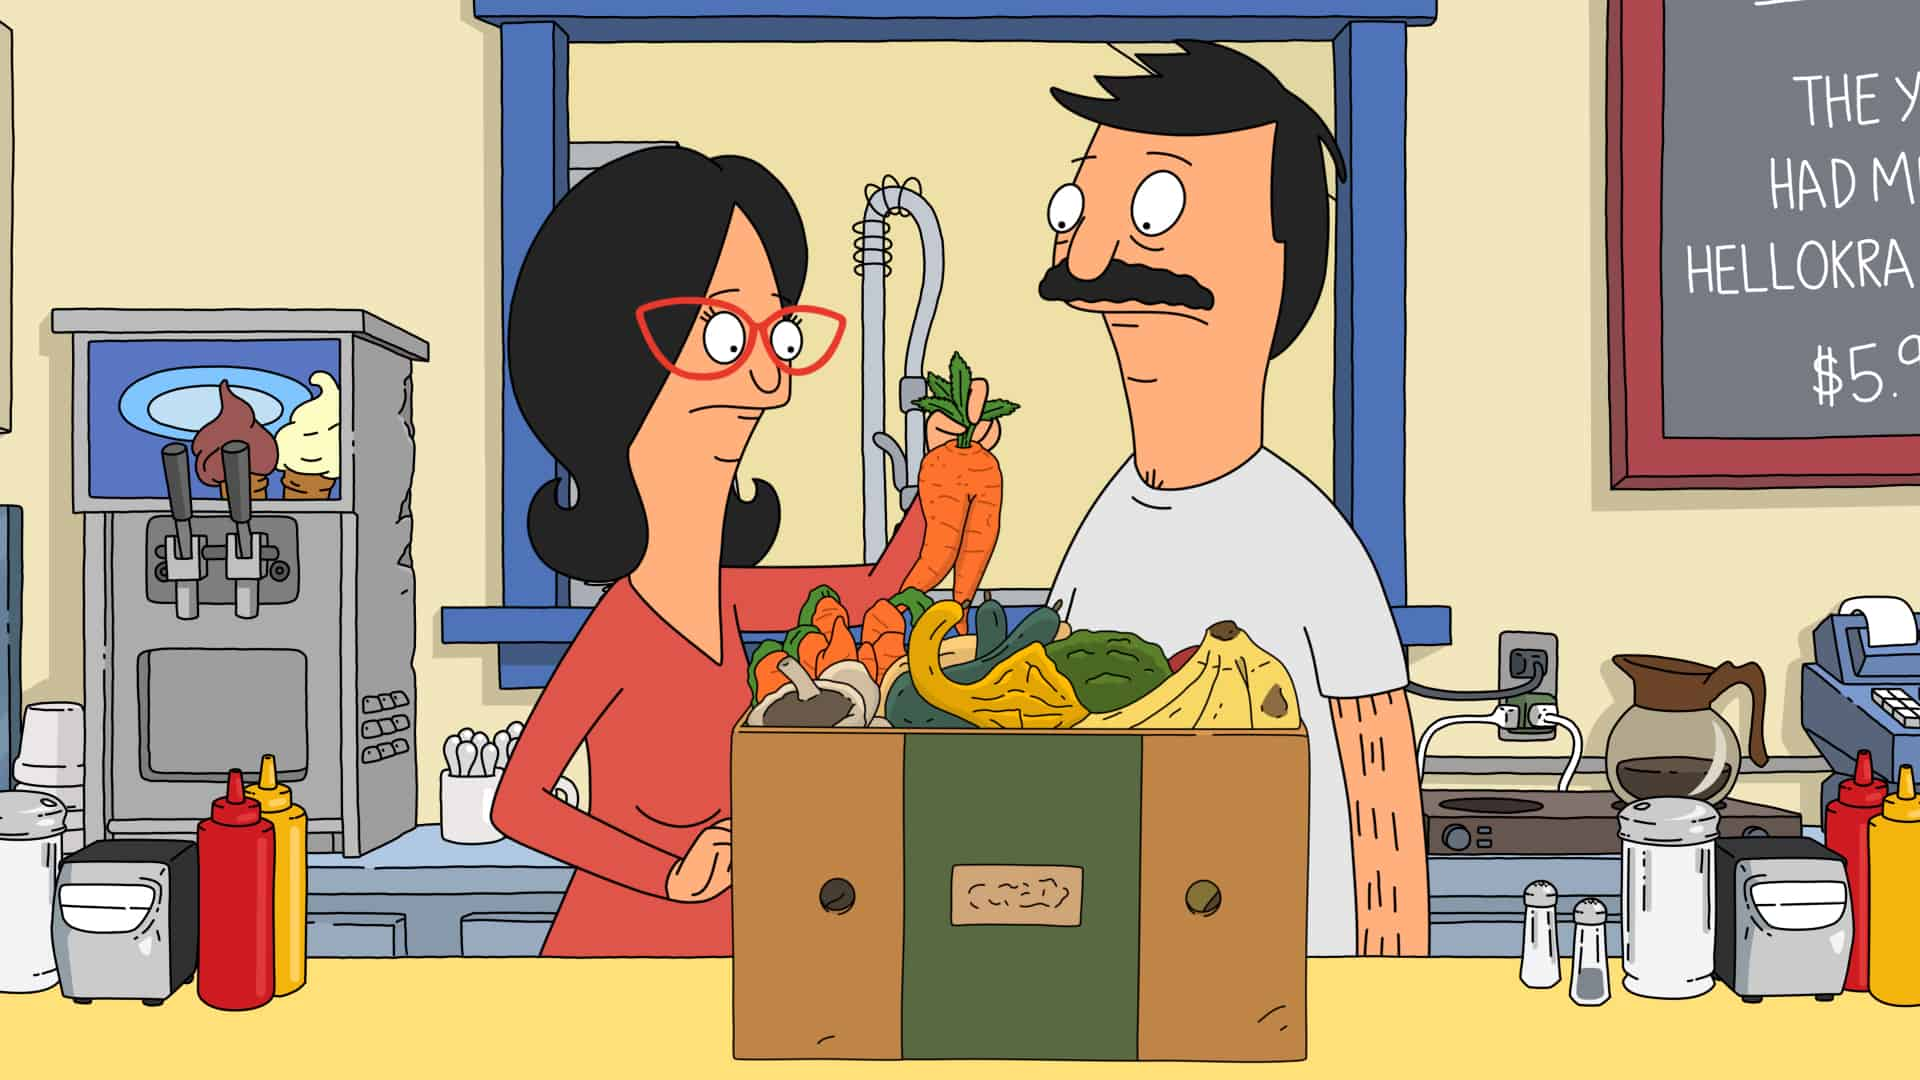 """BOB'S BURGERS Season 12 Episode 2: In order to help with anxiety about an upcoming oral report, Mr. Frond lends Tina a crystal that his new girlfriend alleges has special powers. Meanwhile, Bob and Linda buy a box of imperfect produce and try to use it all before it rots in the """"Crystal Mess"""" episode of BOB'S BURGERS airing Sunday, Oct. 3 (9:00-9:30 PM ET/PT) on FOX. BOB'S BURGERS © 2021 by 20th Television."""